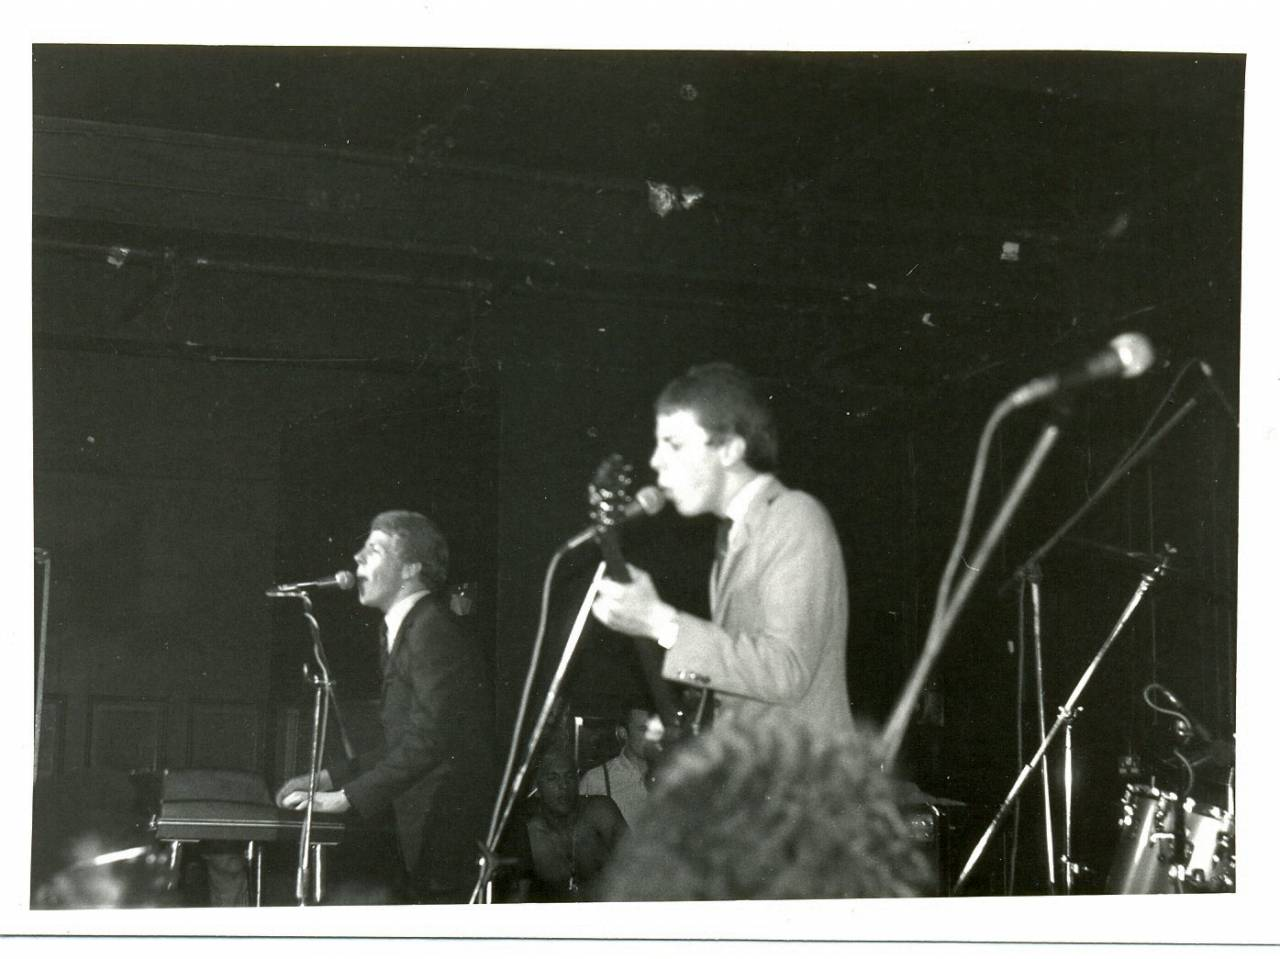 The Merton Parkas, Marquee Club, 1980